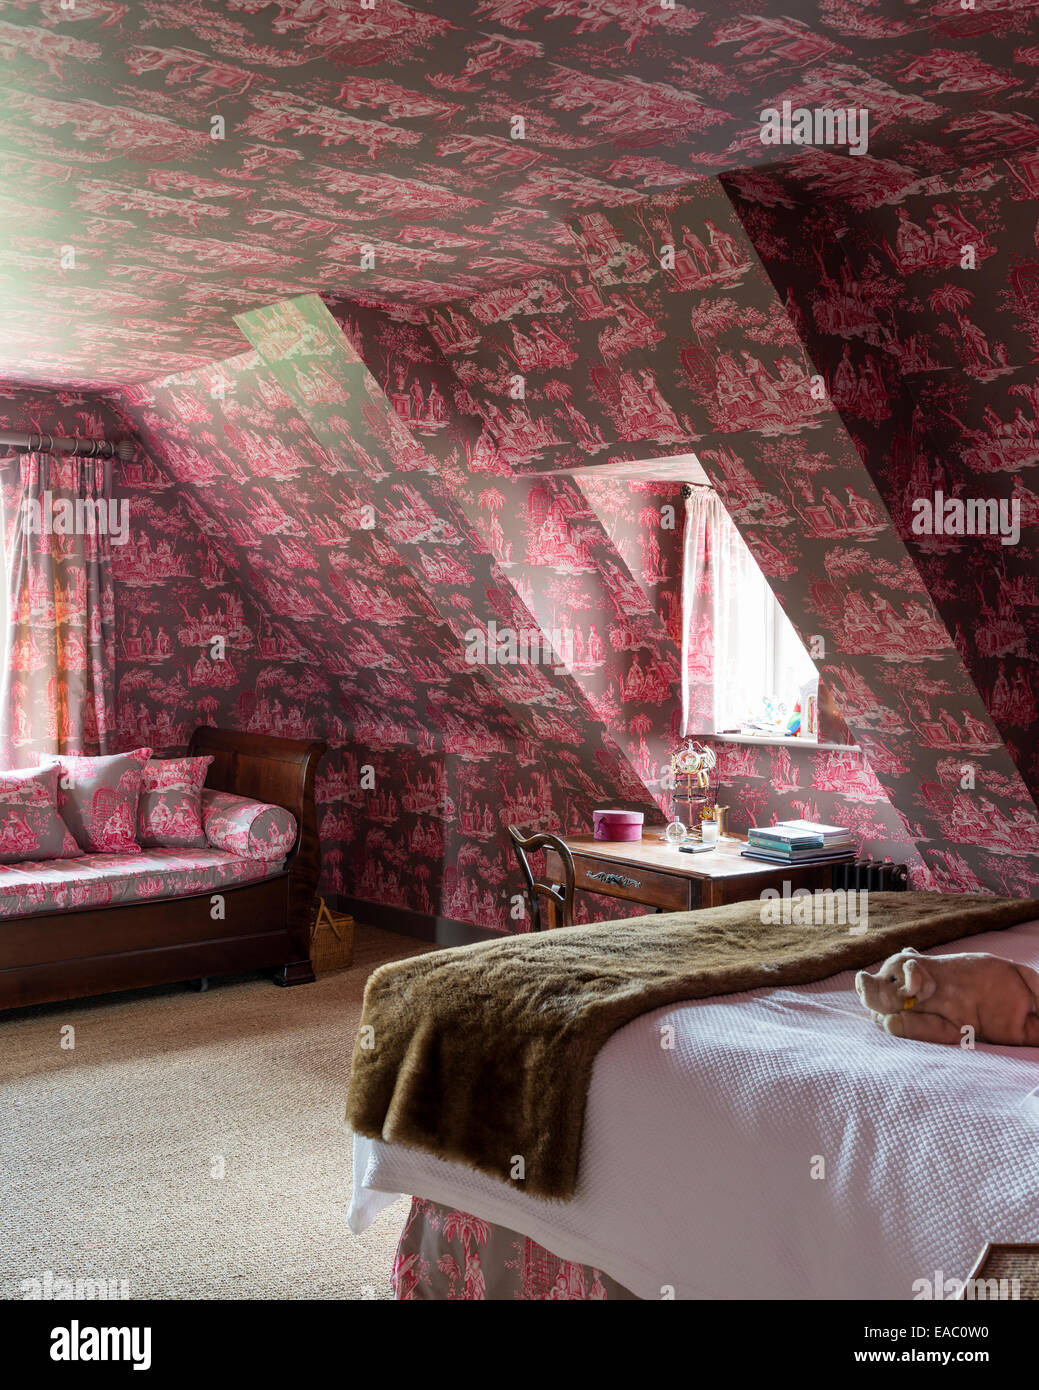 Attic Style Bedroom With Bold Toile De Jouy Wallpaper And Fabric